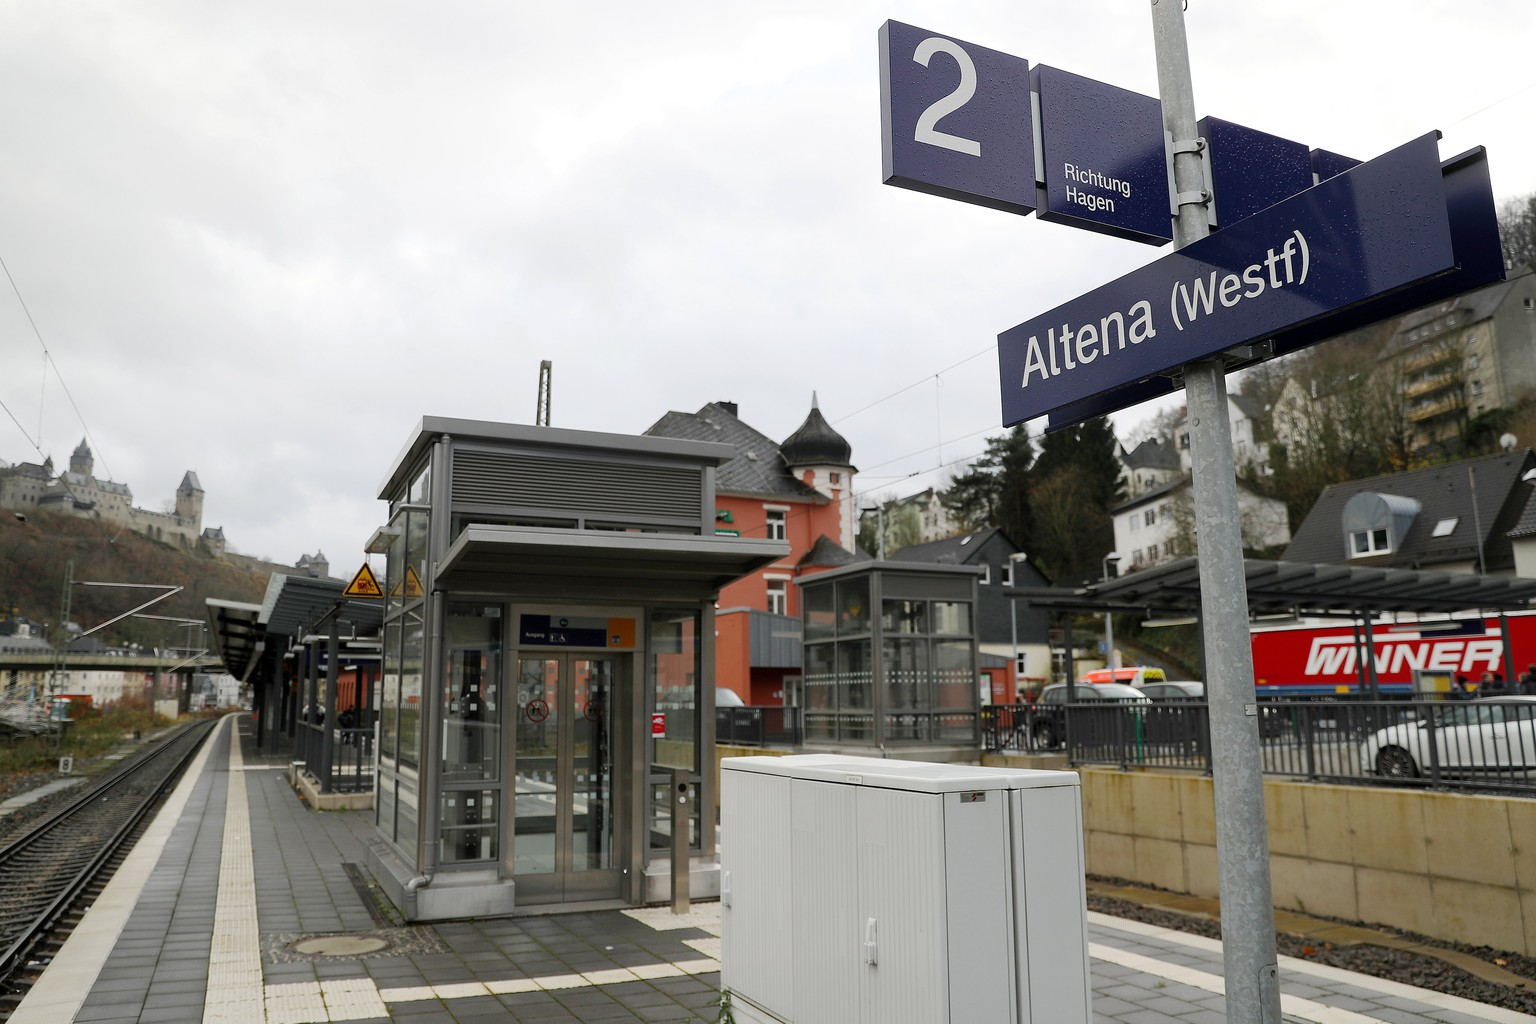 epa06355285 The train station of Altena, North Rhine-Westphalia, Germany, 28 November 2017. A man has attacked and injured the mayor of Altena in what police believe was a xenophobic act. Andreas Hollstein was assaulted with a knife while waiting at a doner kebab fast food stand in Altena, Germany in the evening of 27 November 2017. Witnesses to the incident said that a man approached Hollstein, who is a member of the conservative CDU party, and criticized him for his pro-refugee policy, then pulling a knife an injuring him on the neck.  EPA/ULRICH HUFNAGEL